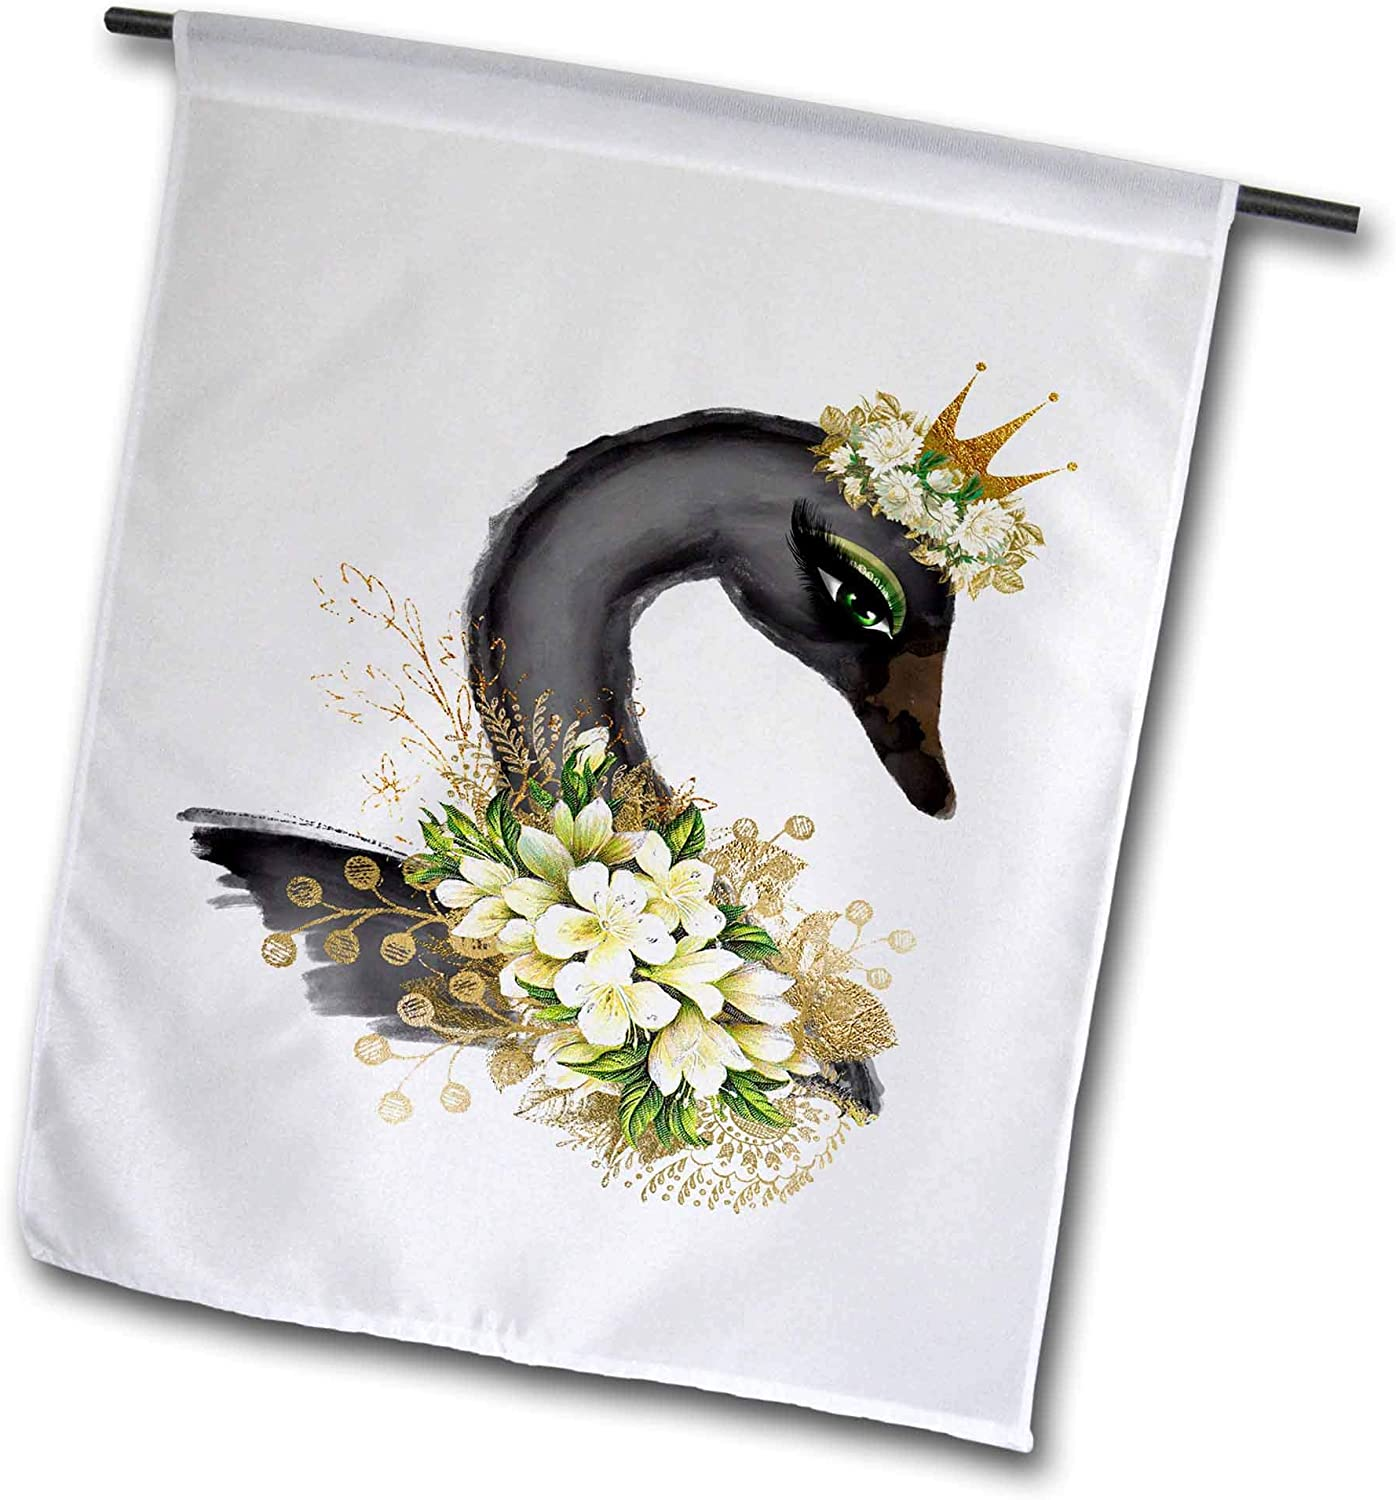 3dRose Anne Marie Baugh - Design - Black Swan Image of Watercolor with Floral Accents Design - 12 x 18 inch Garden Flag (fl_307946_1)